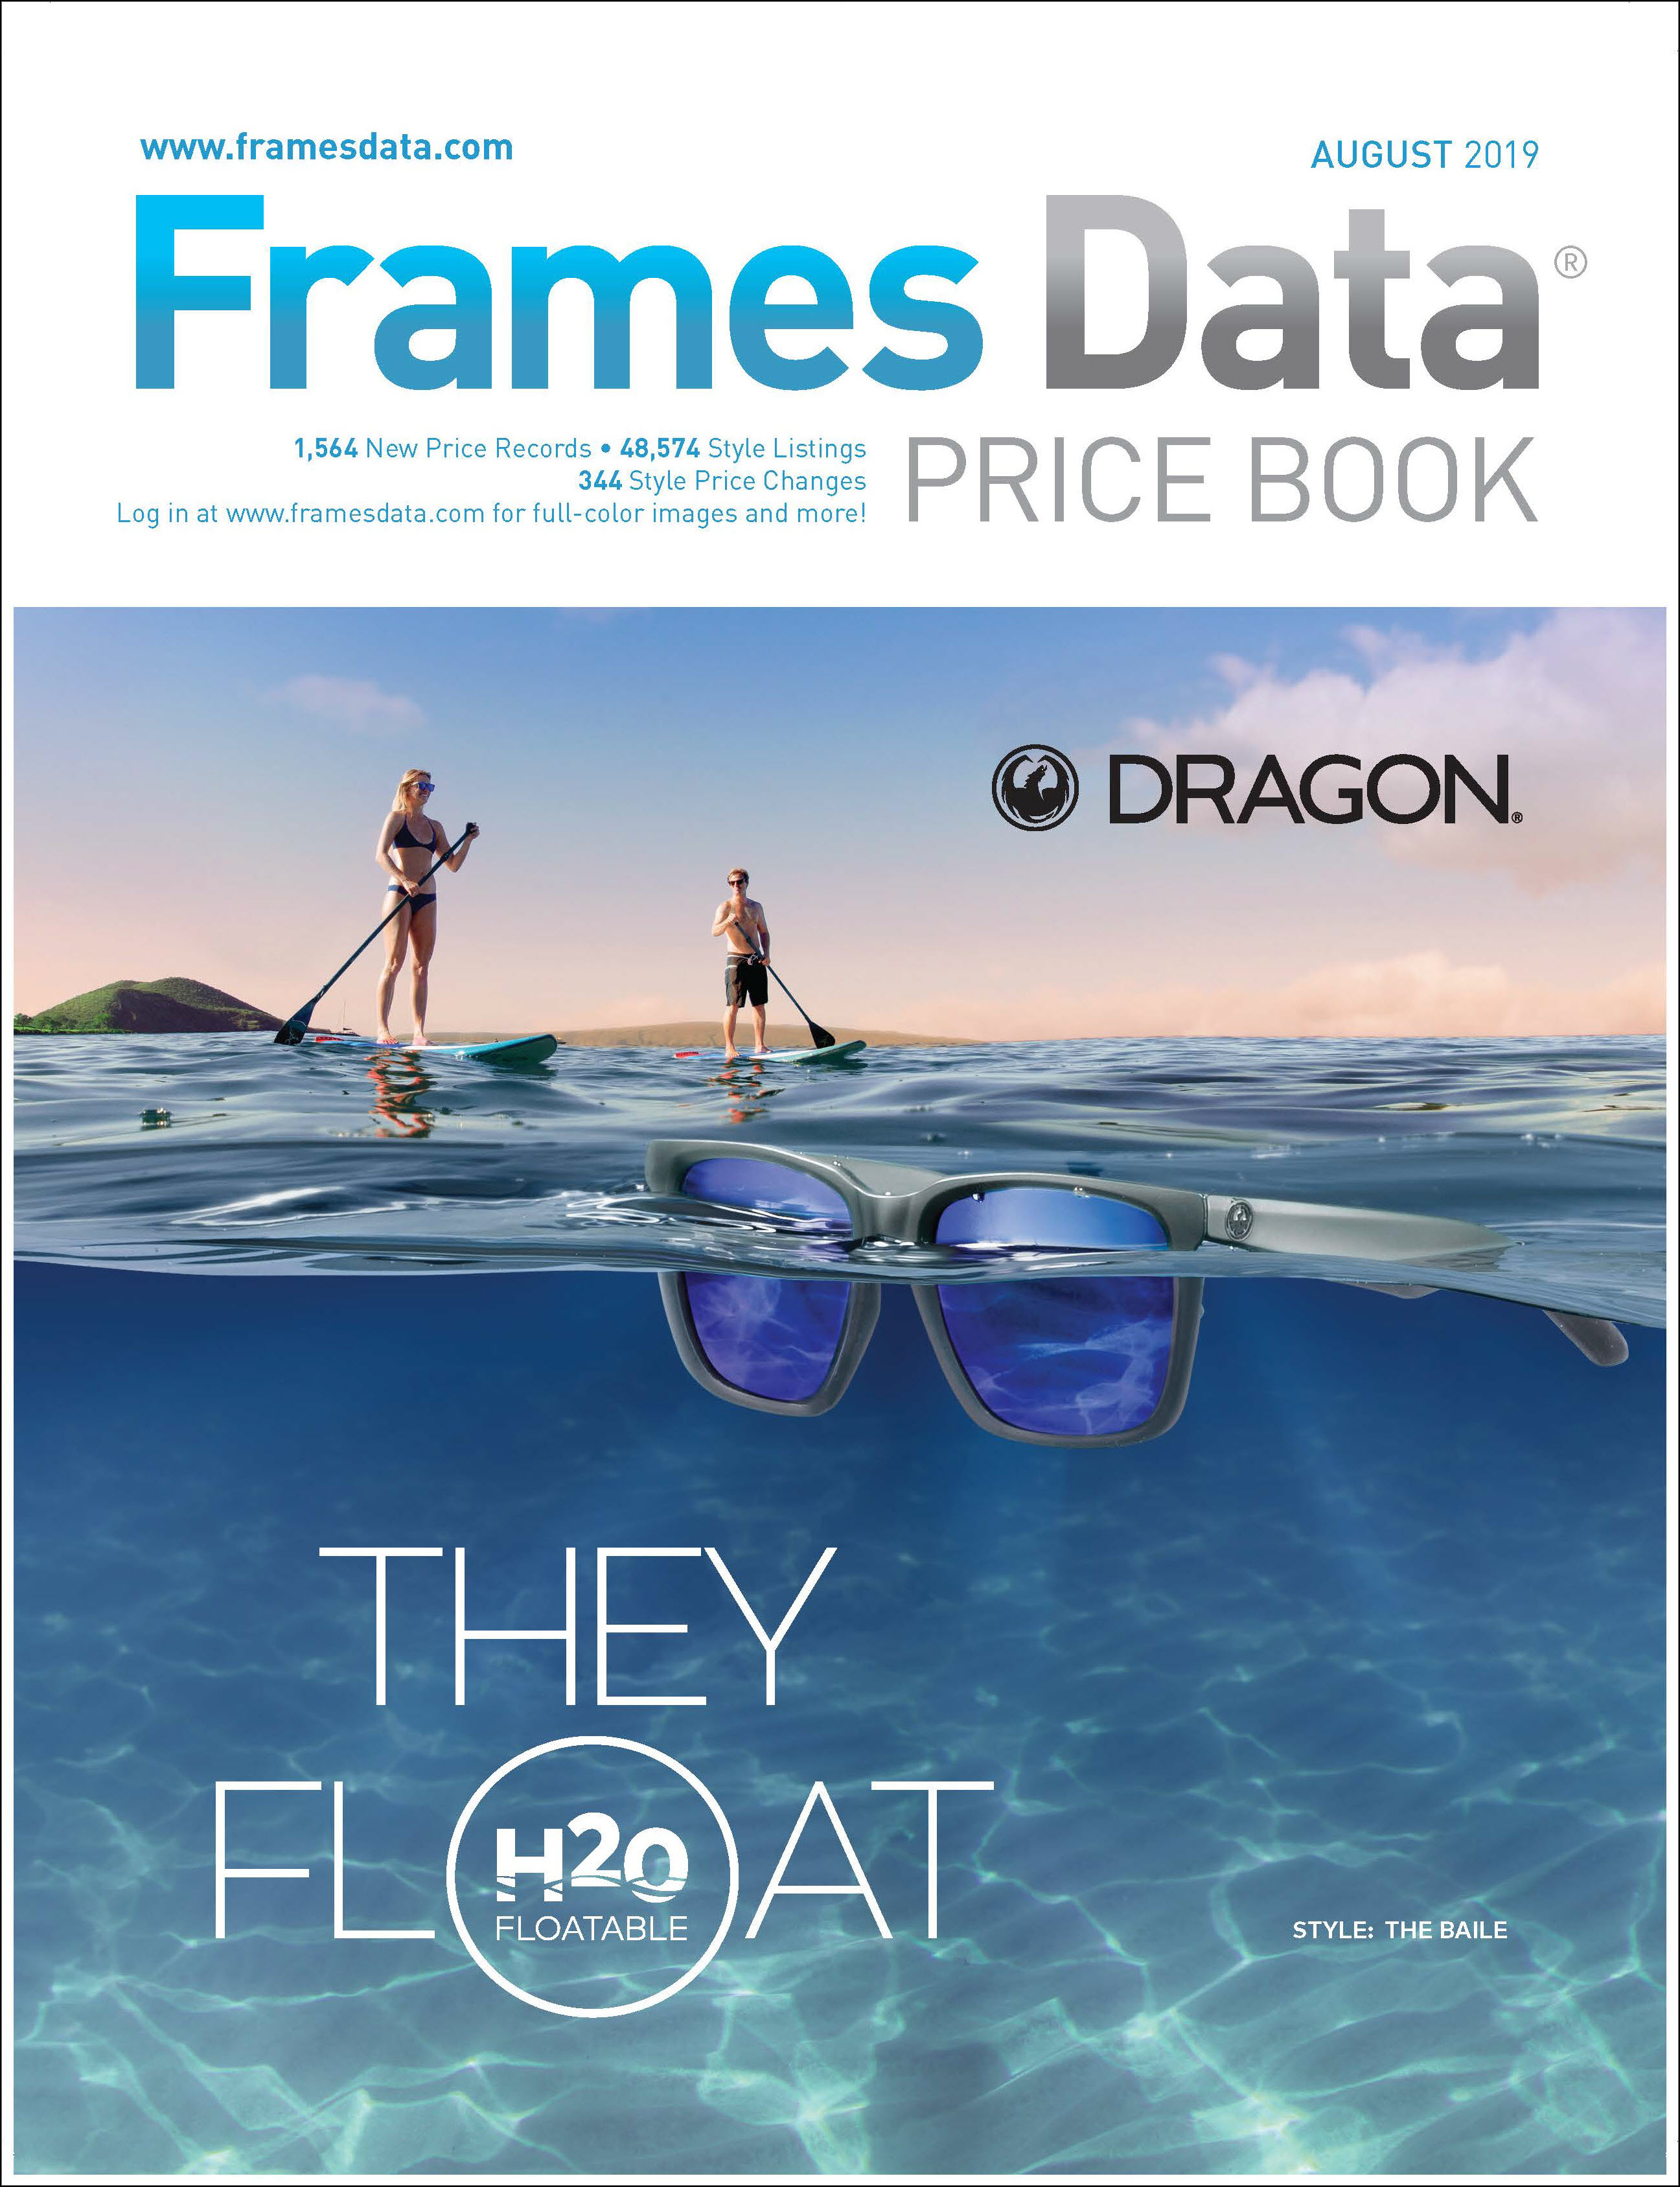 August Price Book features Dragon by Marchon®